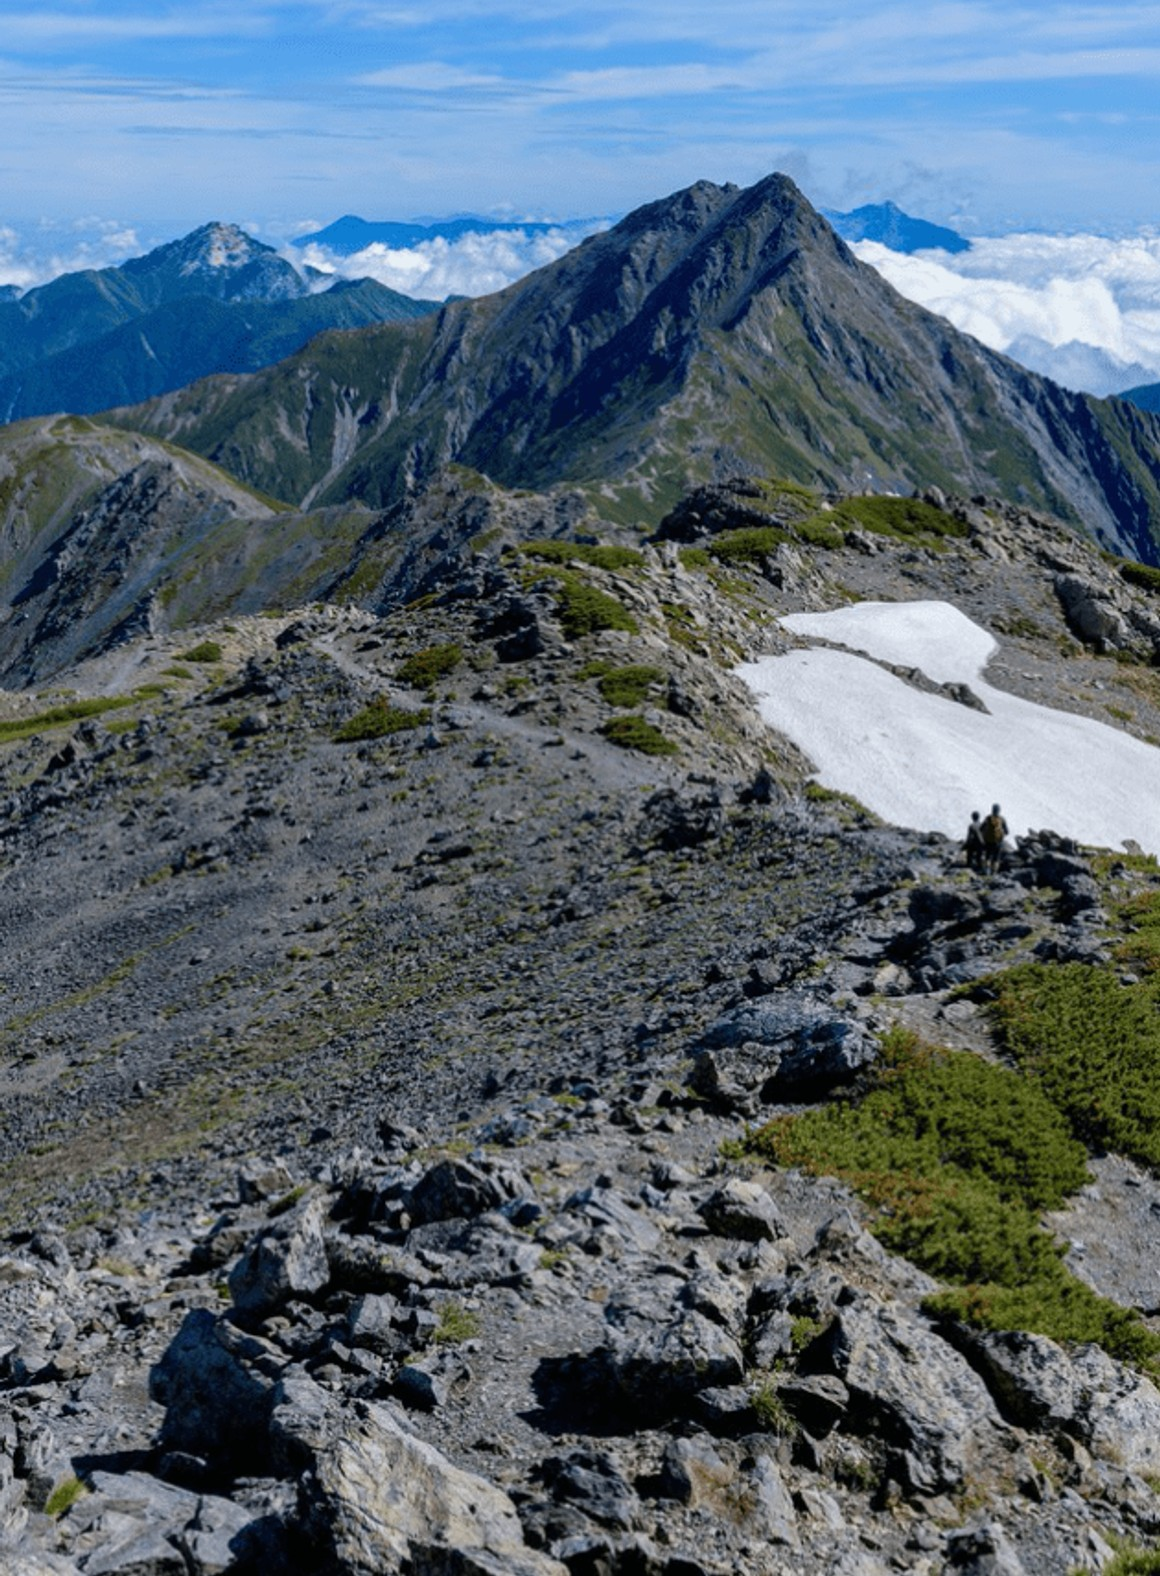 The trekking course that walks nature, and looks at the highest peak of the Southern Alps